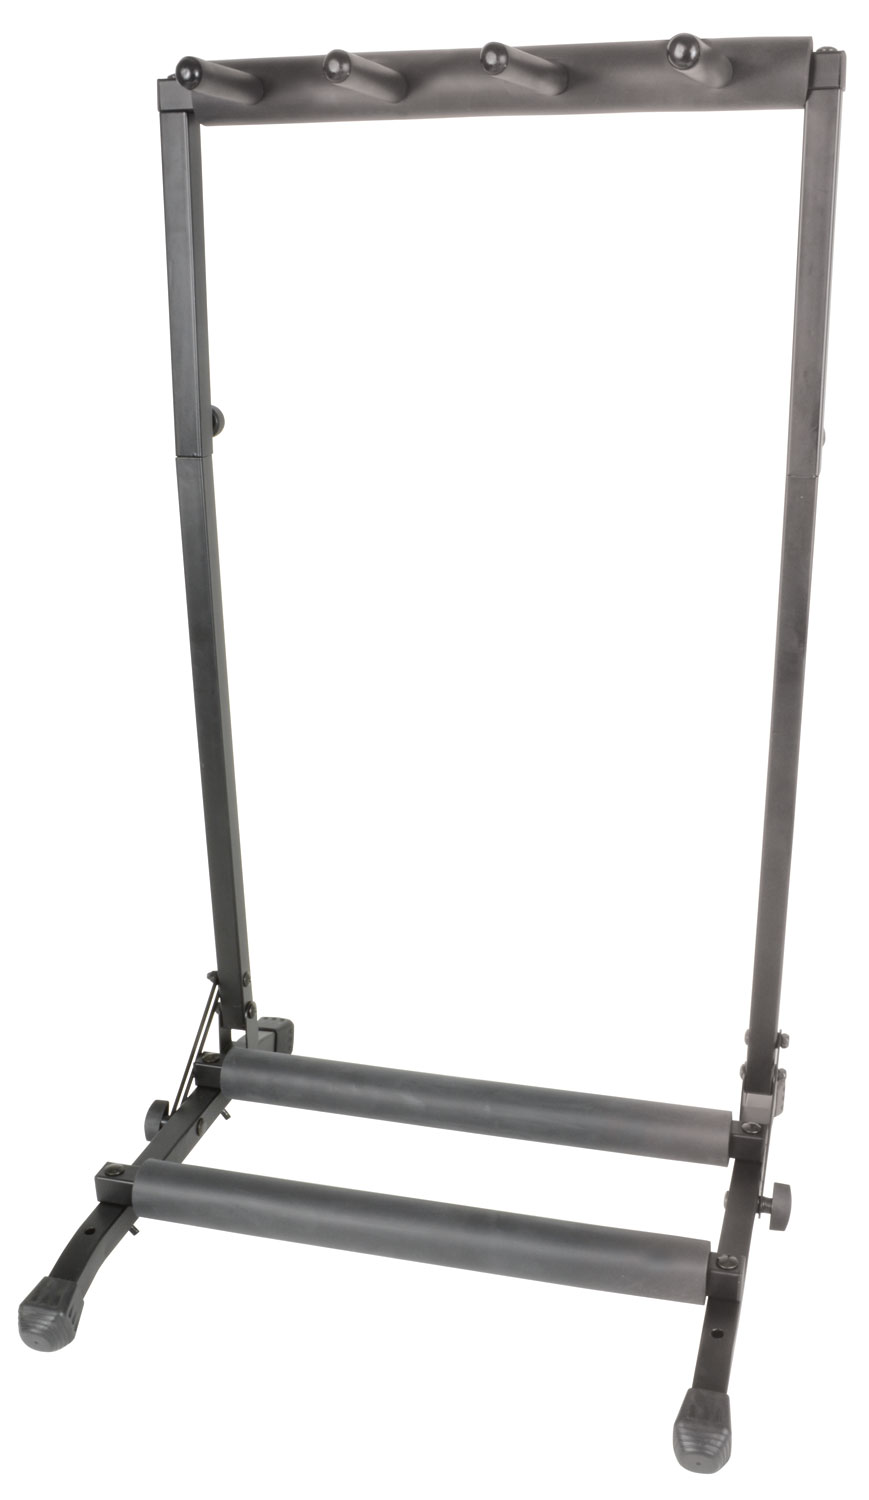 5 Way Guitar Rack Stand